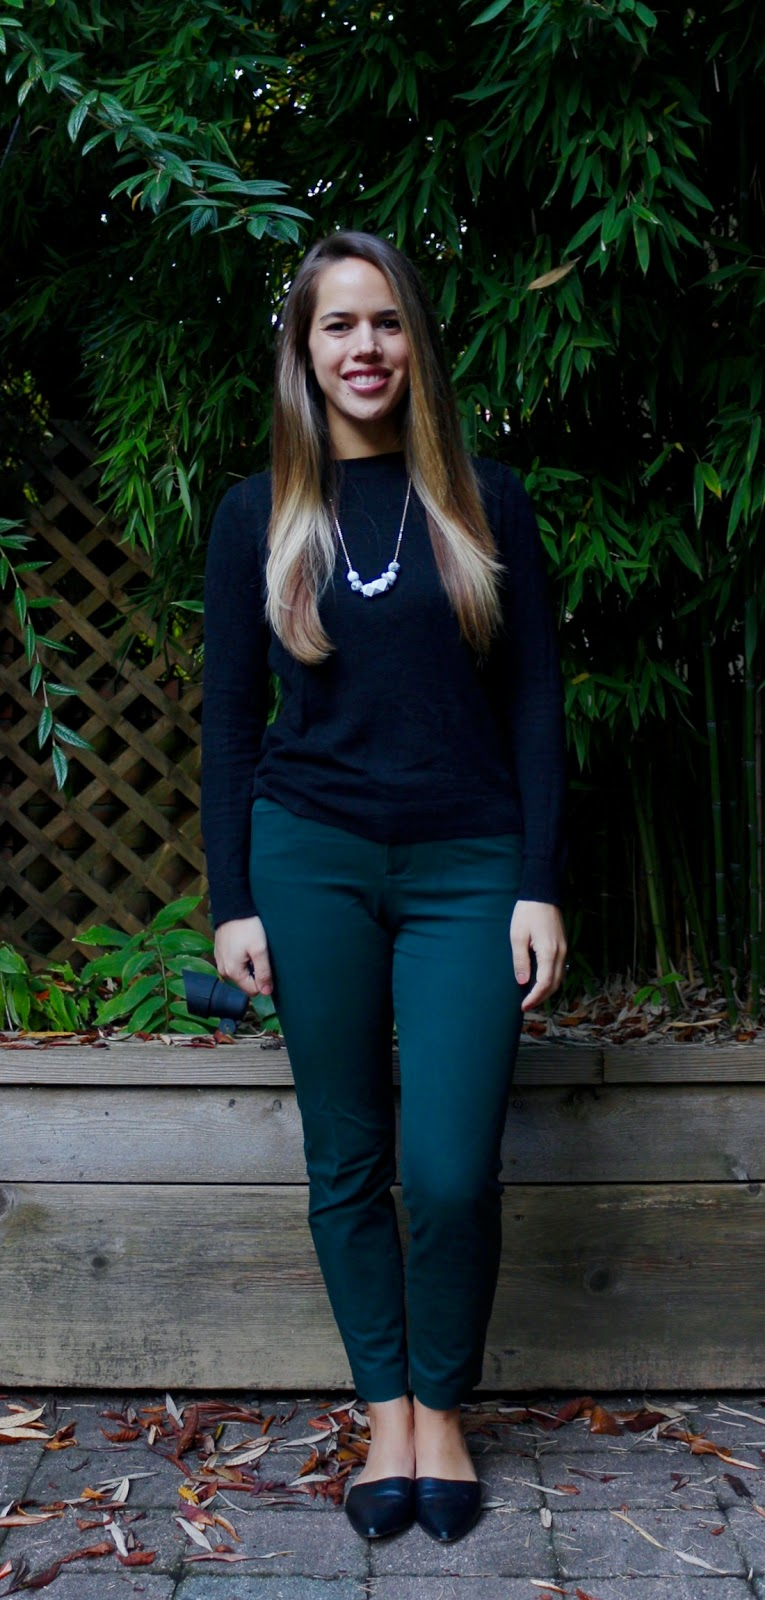 Jules in Flats - Forest Green Ankle Pants with Simple Black Sweater (Business Casual Fall Workwear on a Budget)